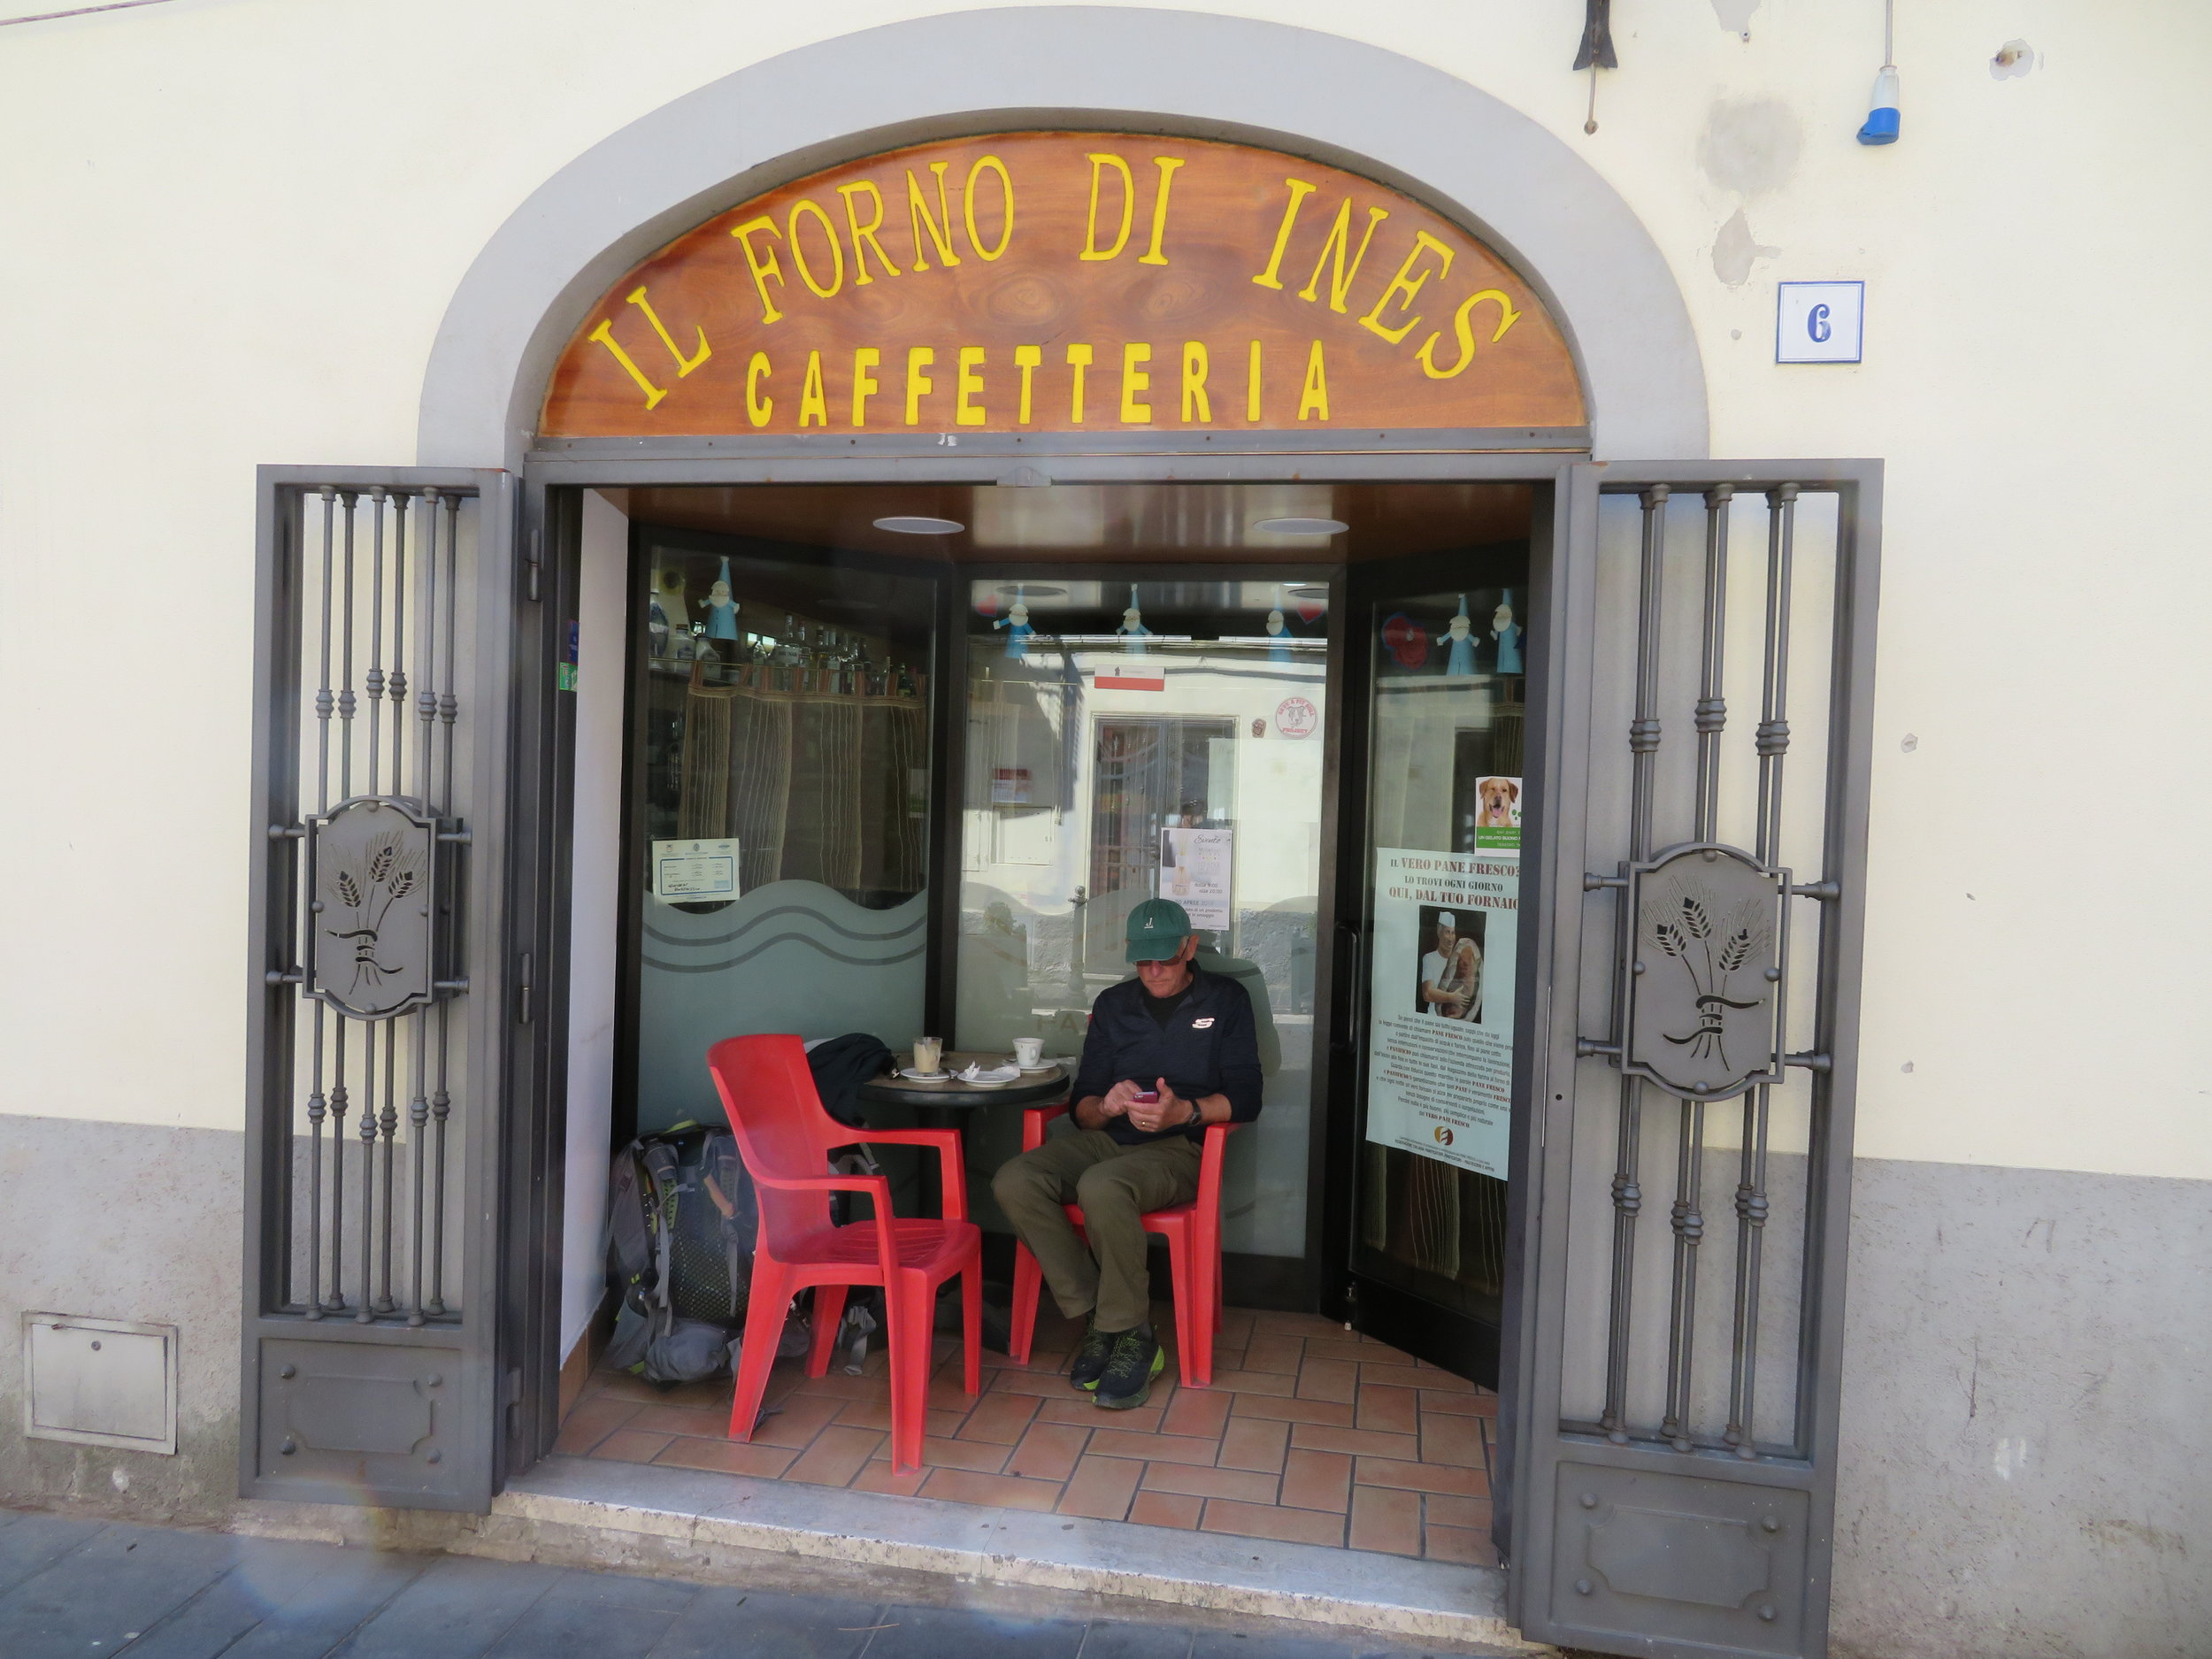 A stop at a  caffetteria  in the pleasant little town of Monterossi for coffee and a croissant helped us overcome our earlier ice cream disappointment and provided a great little pick-me-up for completing the rest of this particularly long day.